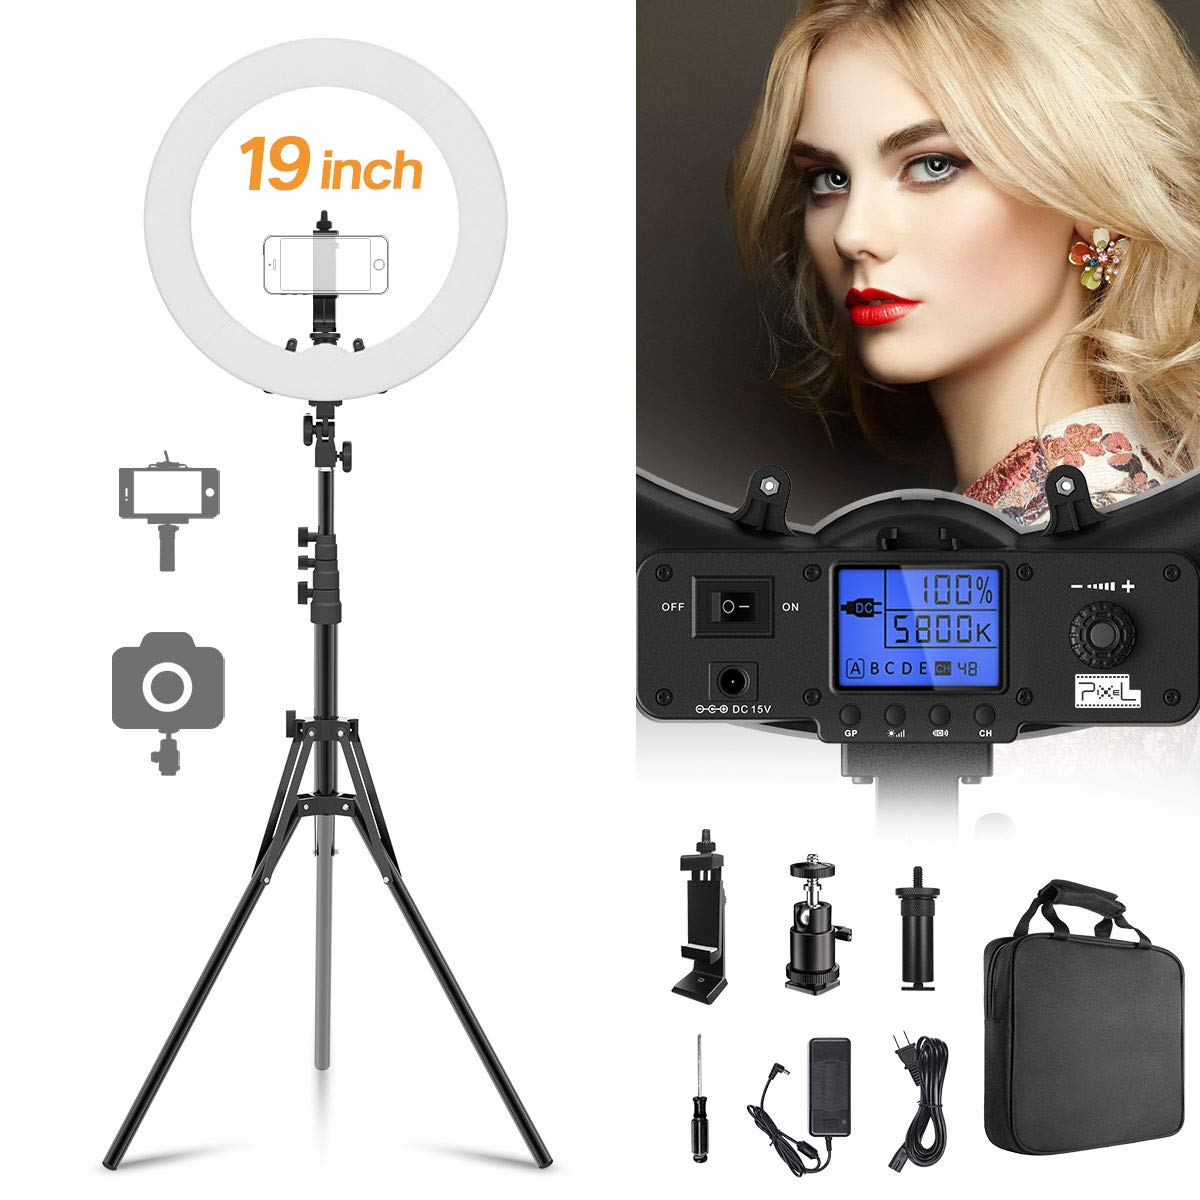 Ring Light, Pixel 19'' Bi-Color LCD Display Ring Light with Stand, 55W 3000-5800K CRI≥97 Halo Light Ring for Vlogging Portrait Makeup Video Shooting